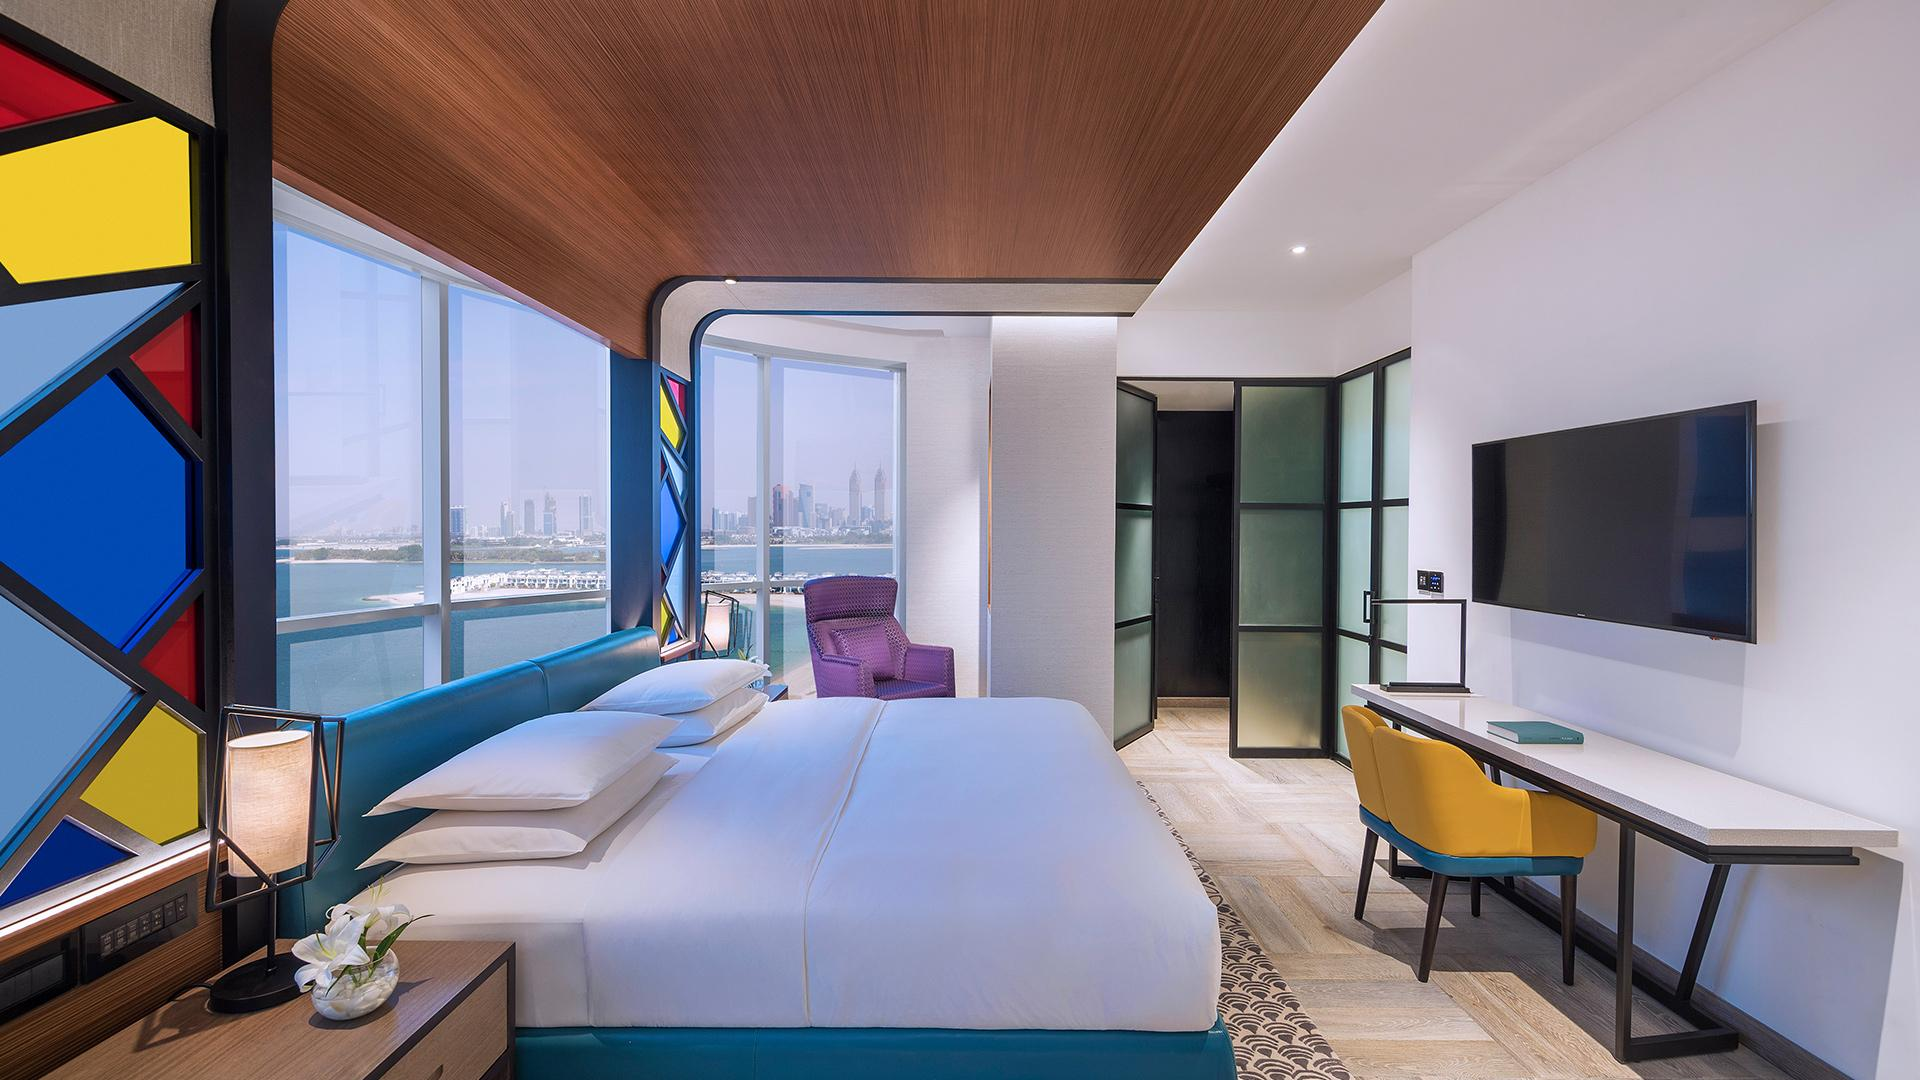 Andaz Suite Palm View image 1 at Andaz Dubai The Palm by null, Dubai, United Arab Emirates